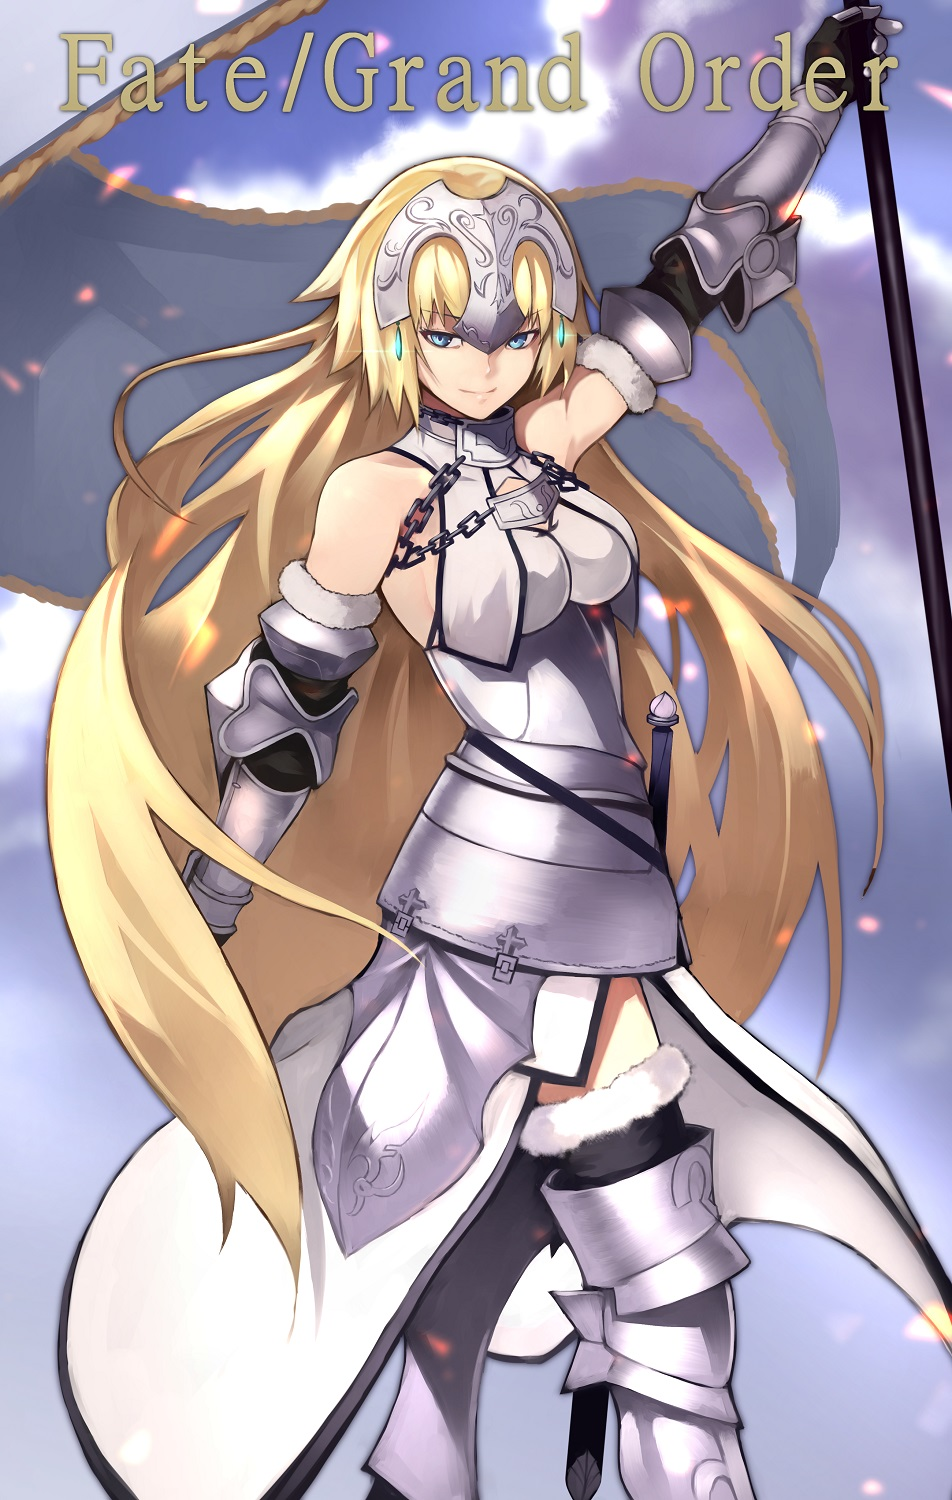 blonde_hair fate/grand_order jeanne_of_arc long_hair ruler_(fate/apocrypha) warrior yellow_eyes